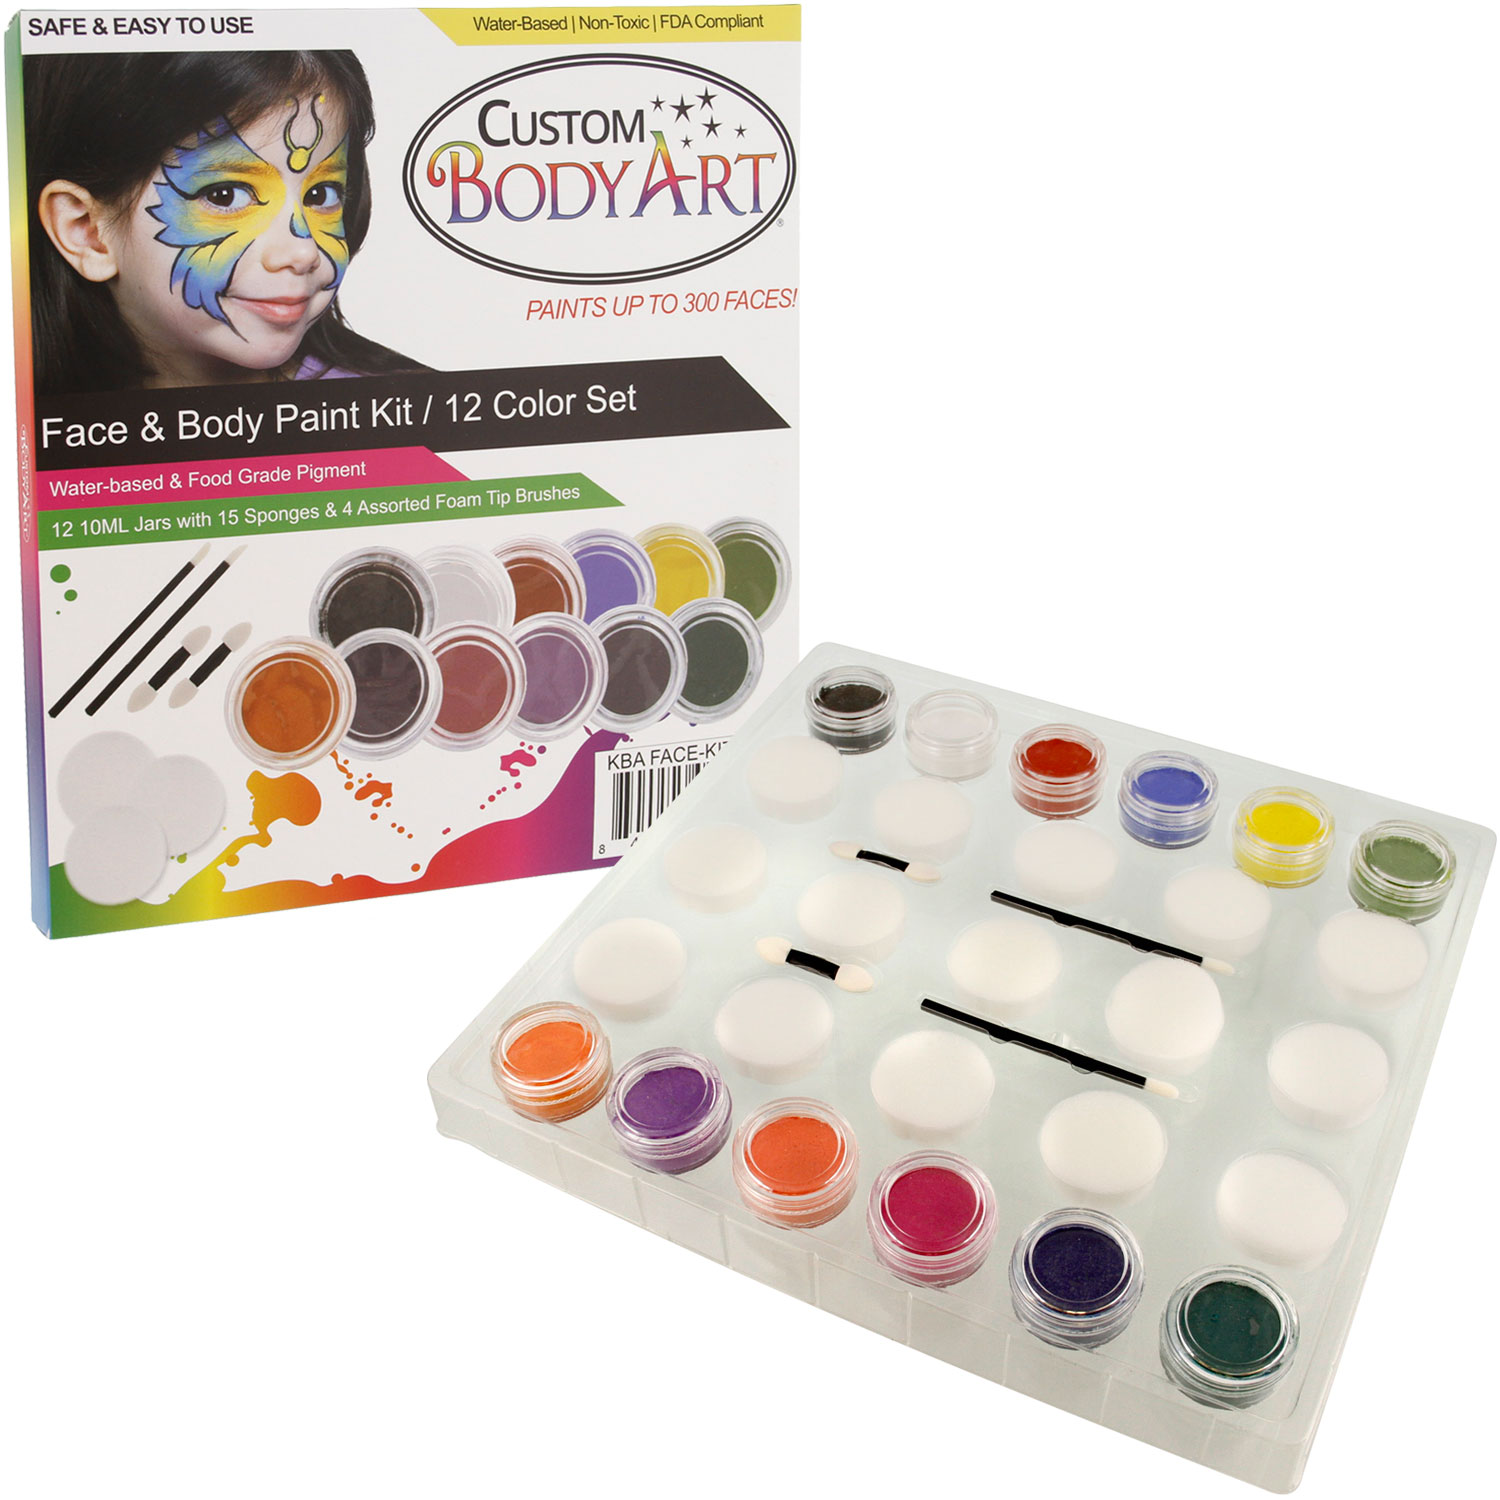 12 -10ml PRIMARY COLORS FACE PAINTING KIT Paint Set Kid